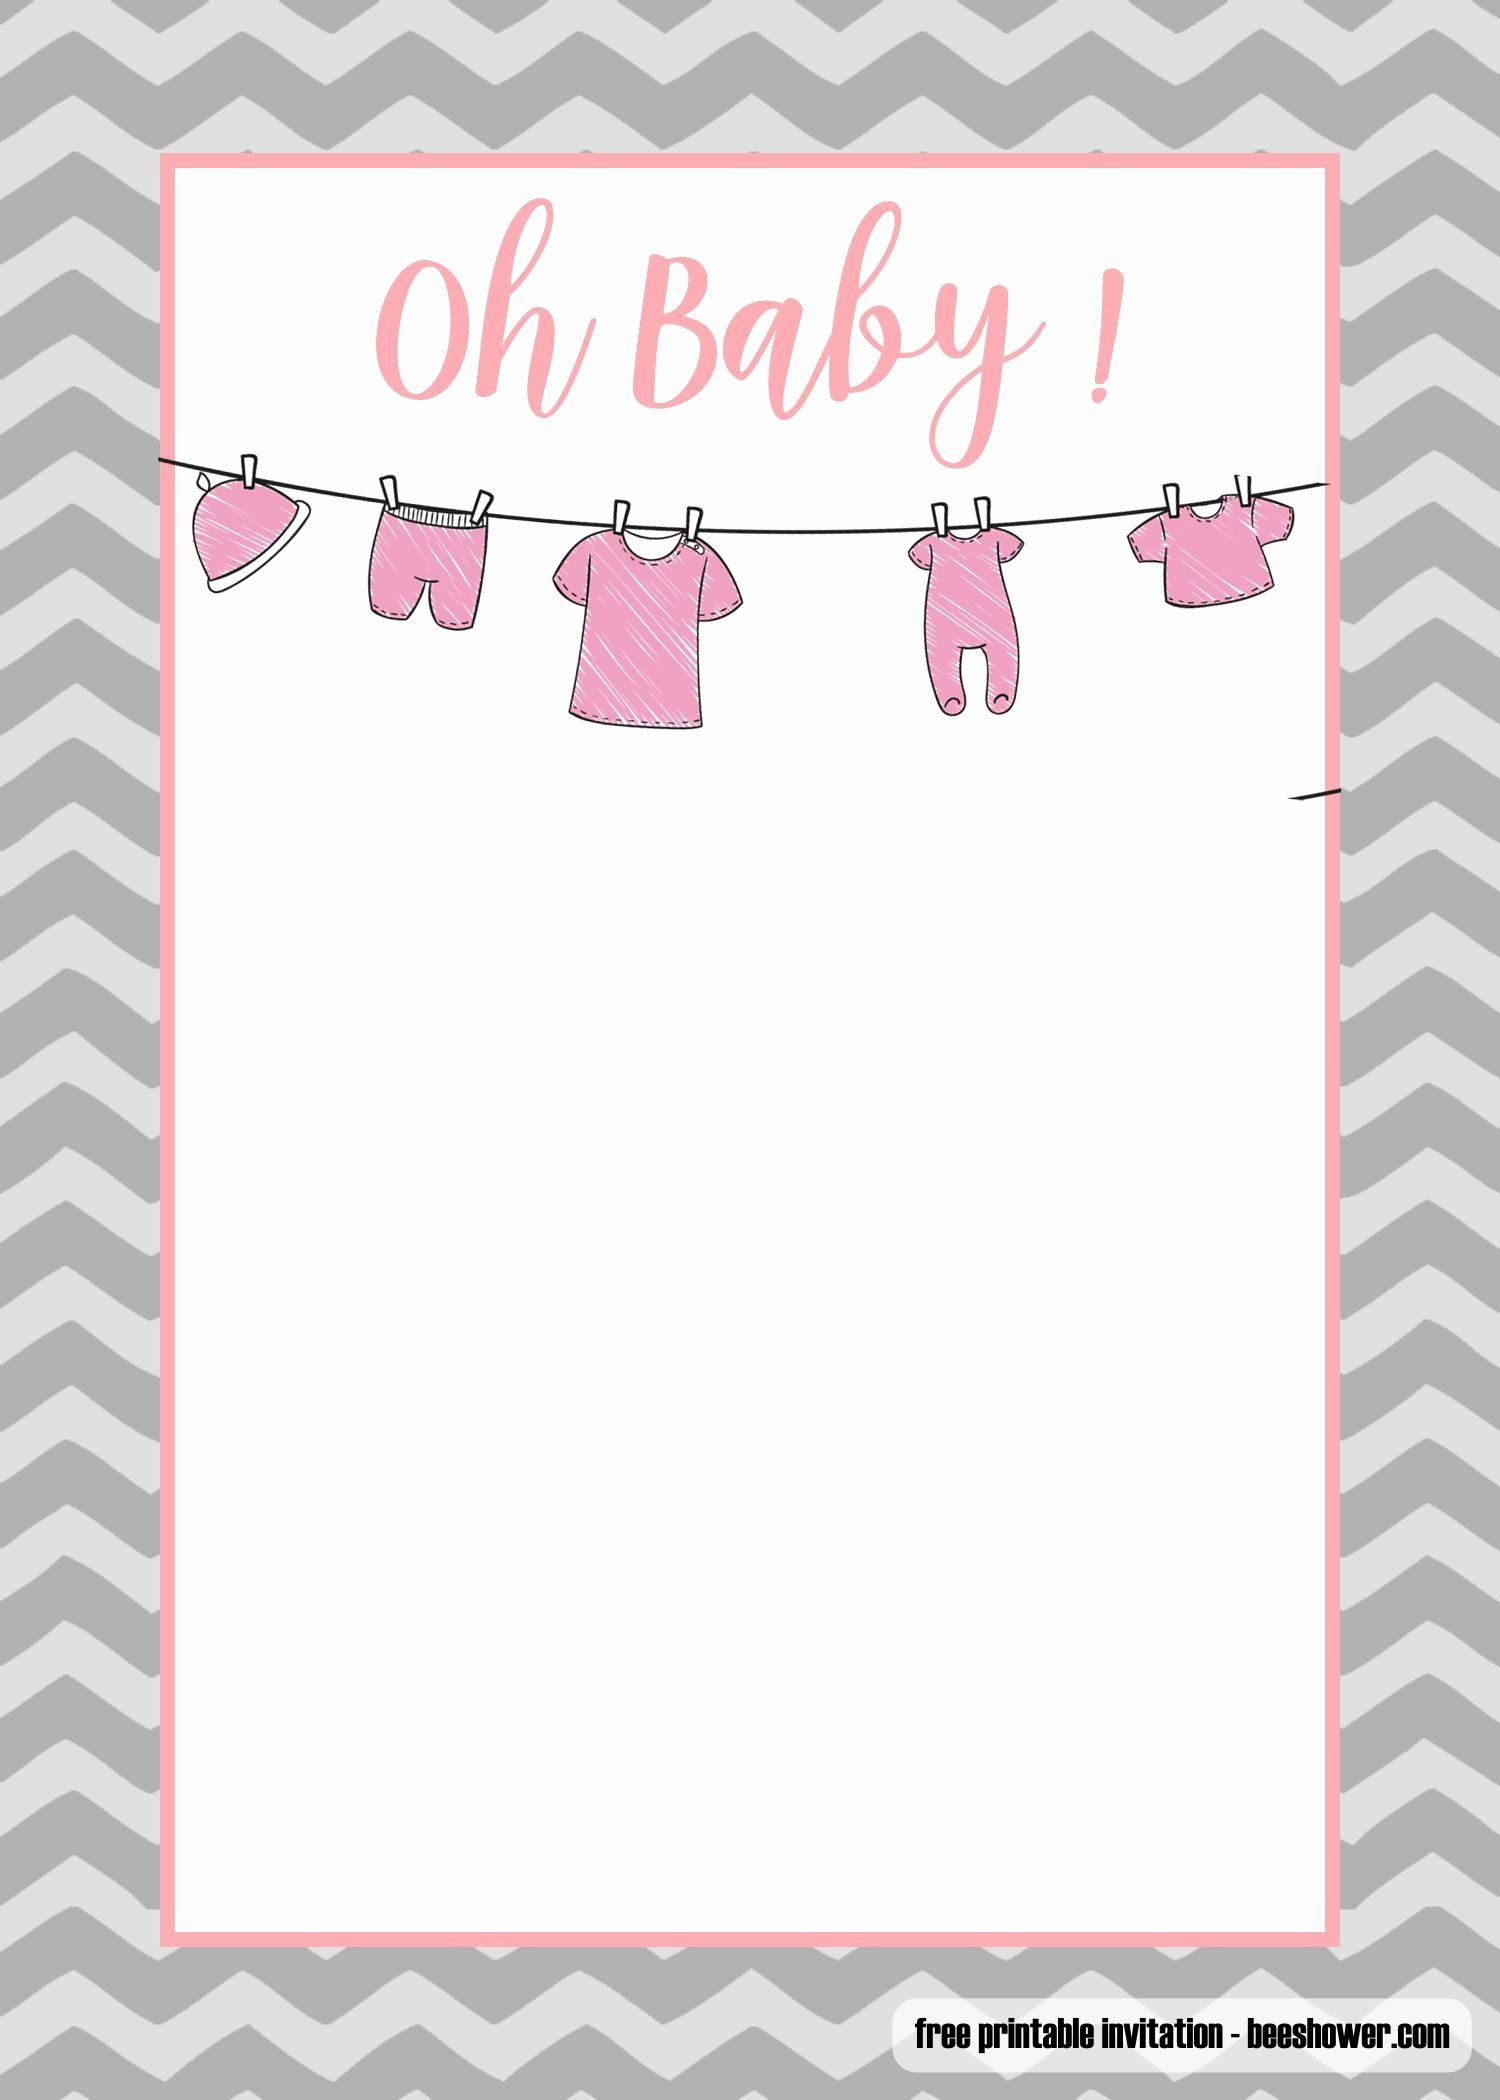 Baby Onesie Template For Baby Shower Invitations New Free Editable Baby S Free Baby Shower Invitations Onesie Baby Shower Invitations Baby Sprinkle Invitations